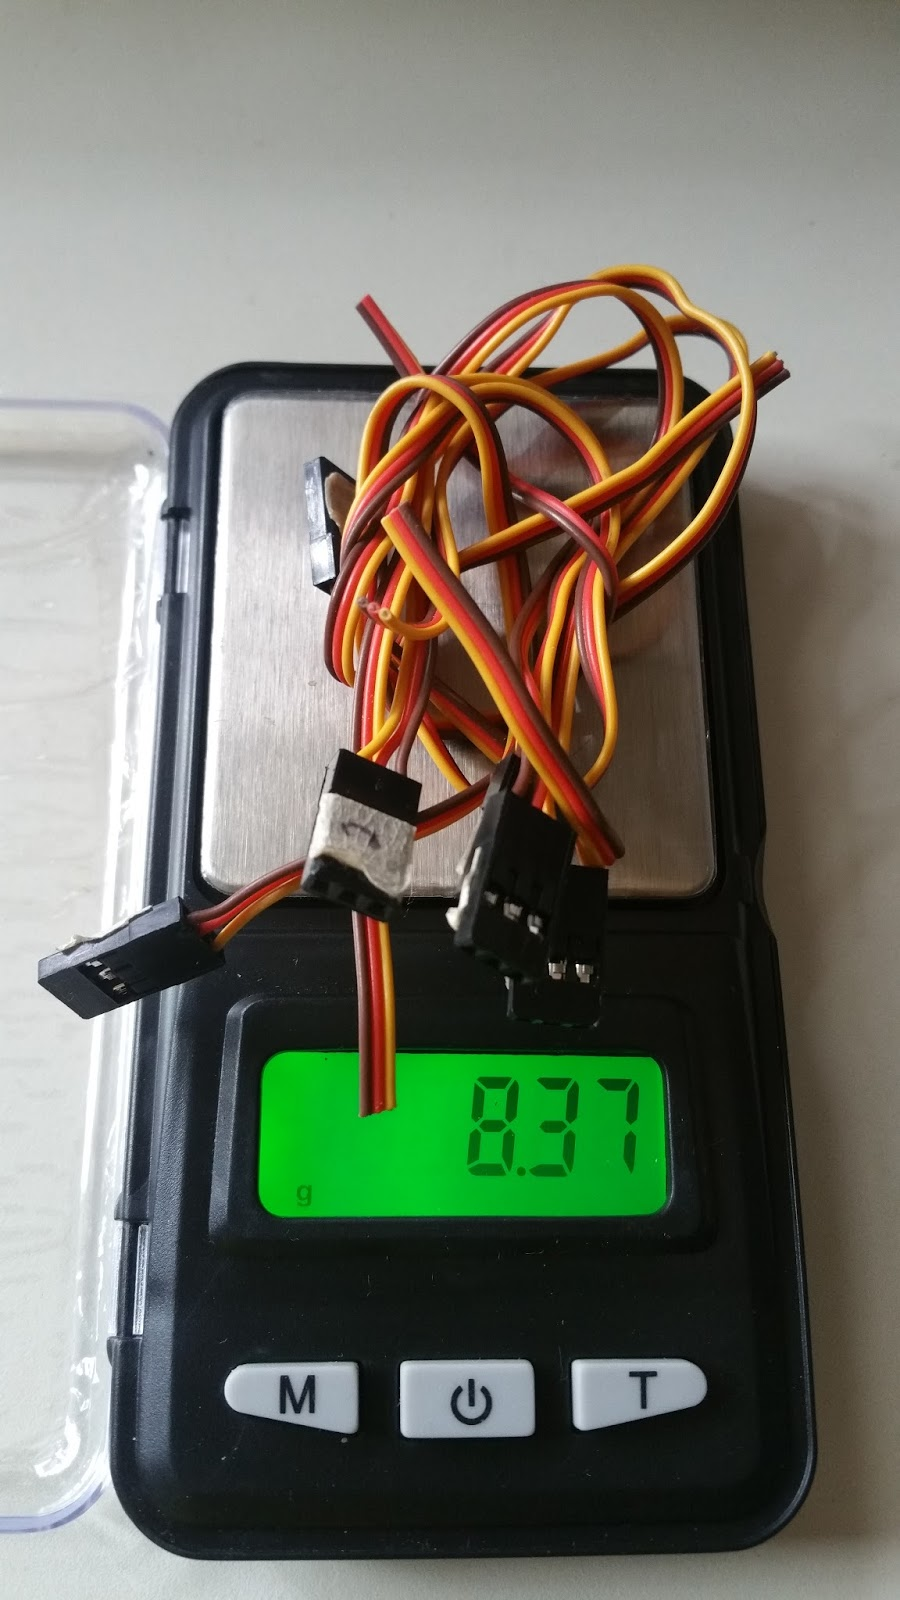 hight resolution of another 8 37g reduced from trimmed esc wires